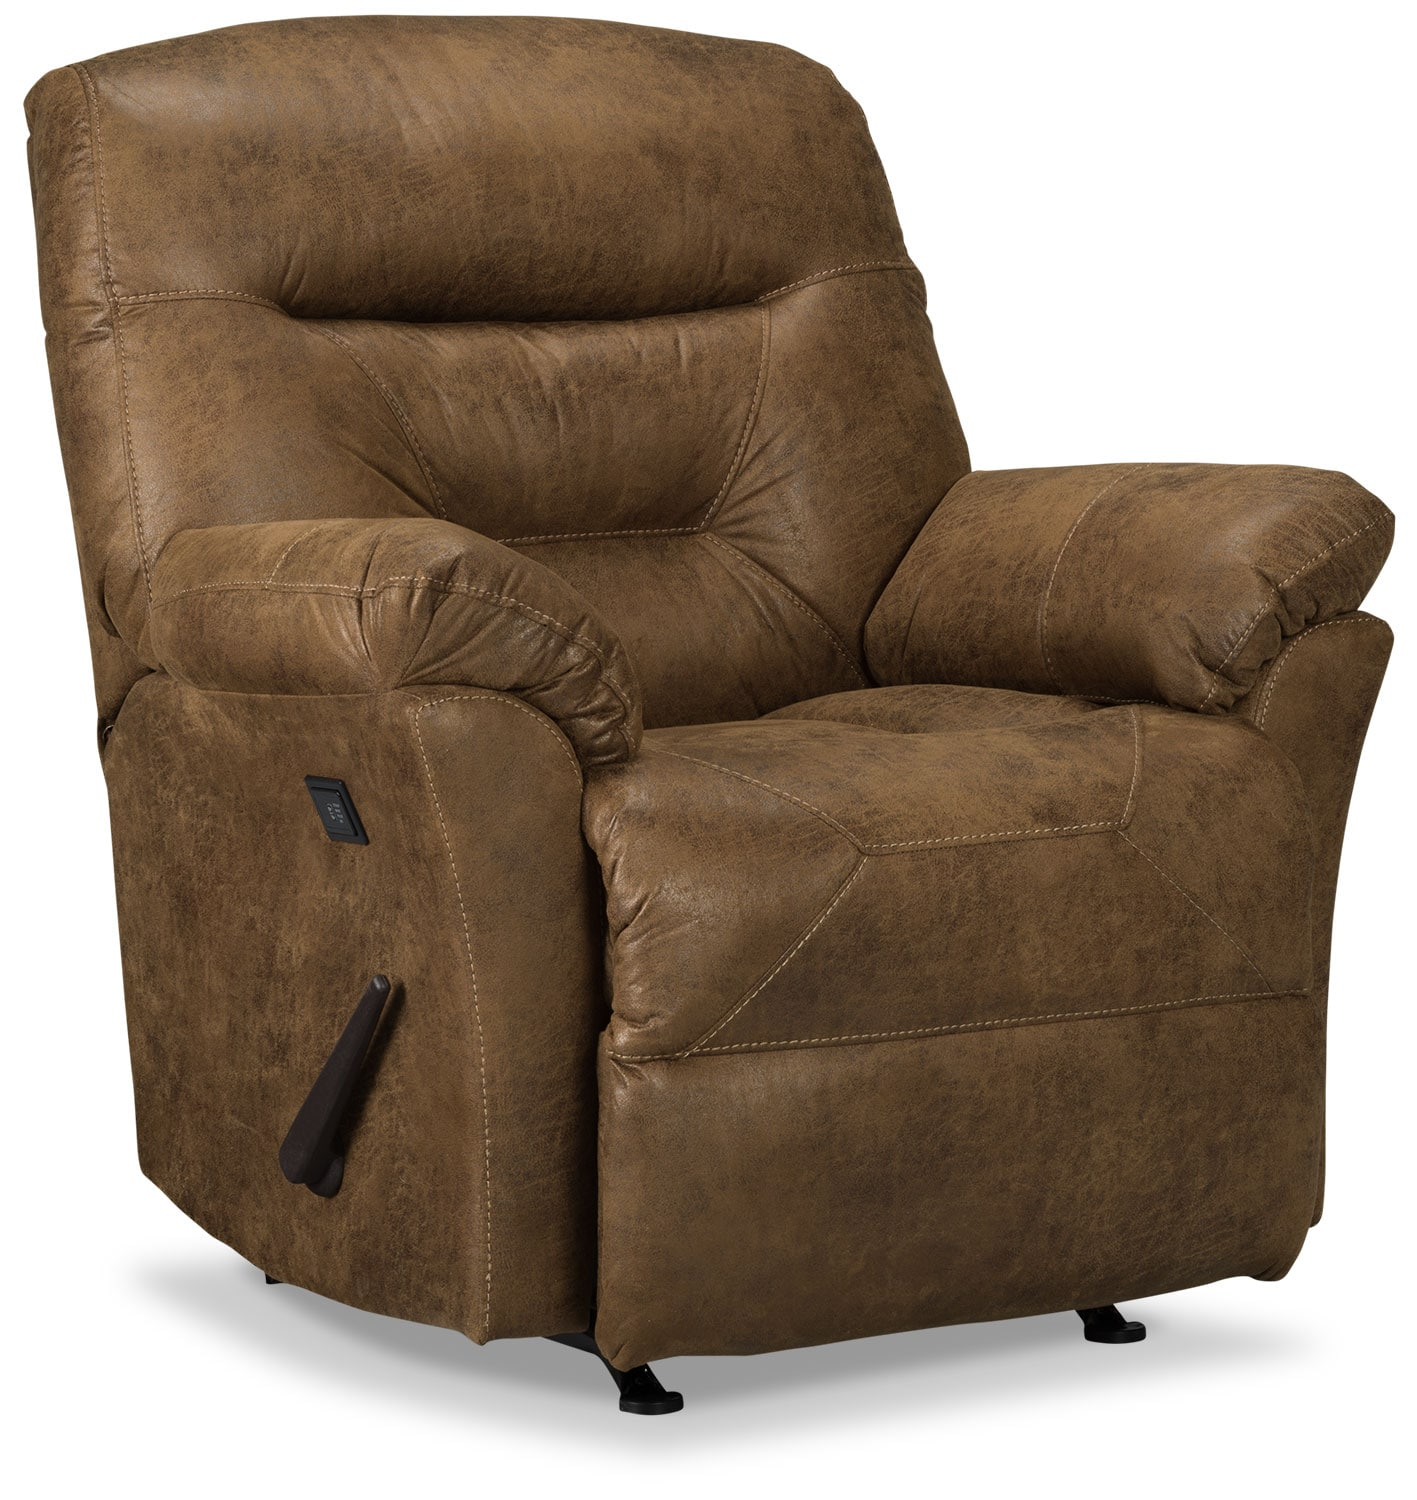 Living Room Furniture - Designed2B Recliner 4579 Leather-Look Fabric Massage Recliner - Stout